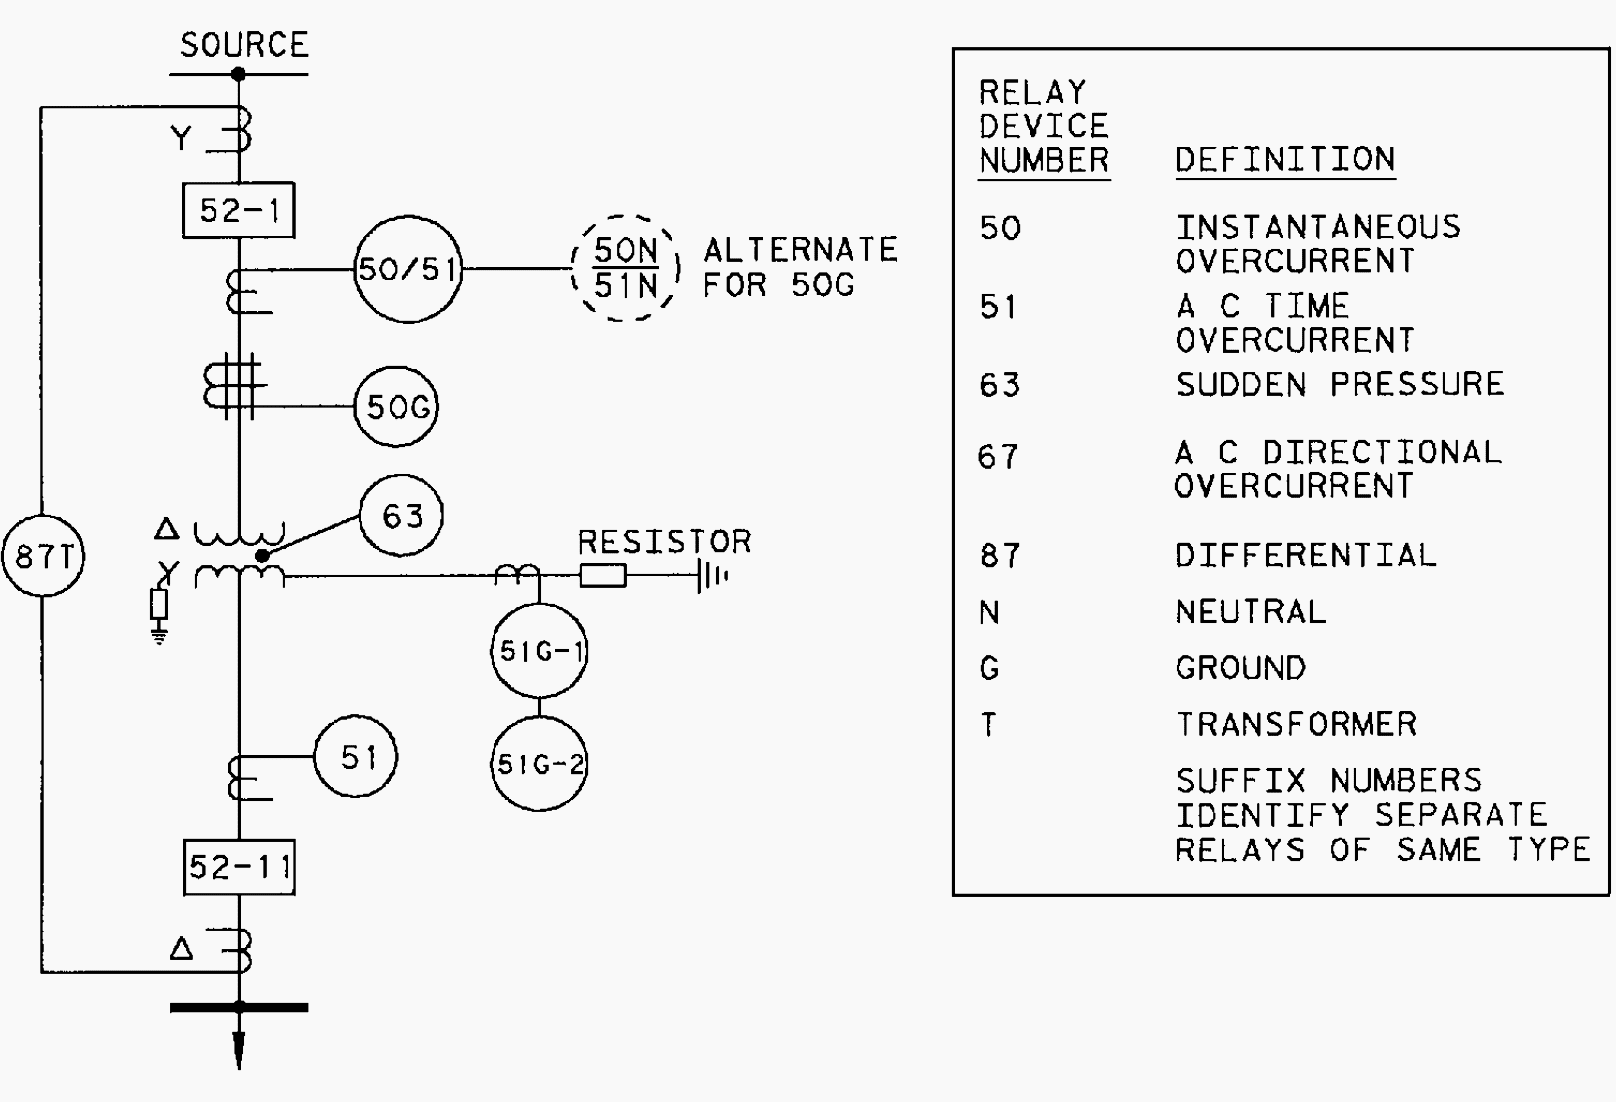 Transformer protection with primary breaker (no load or metering circuits shown)